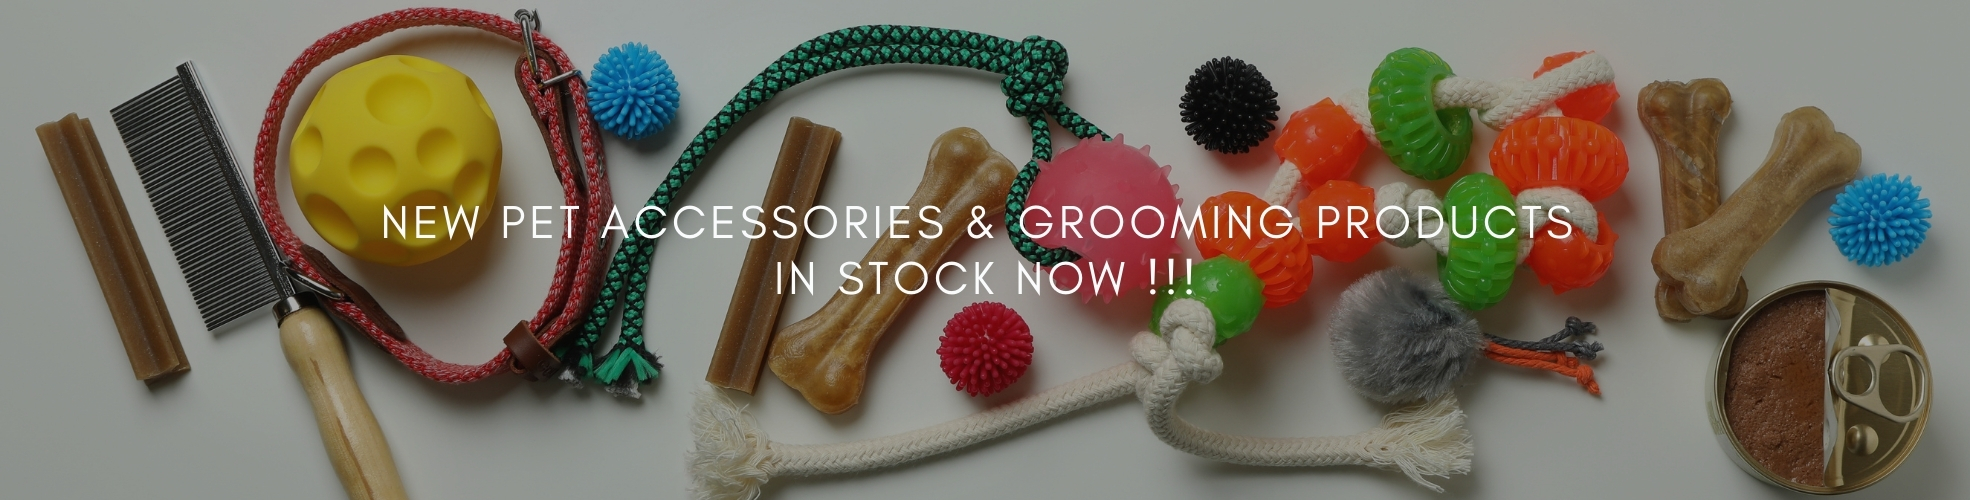 New Wholesale Pet Accessories and Pet Grooming Products in stock now.